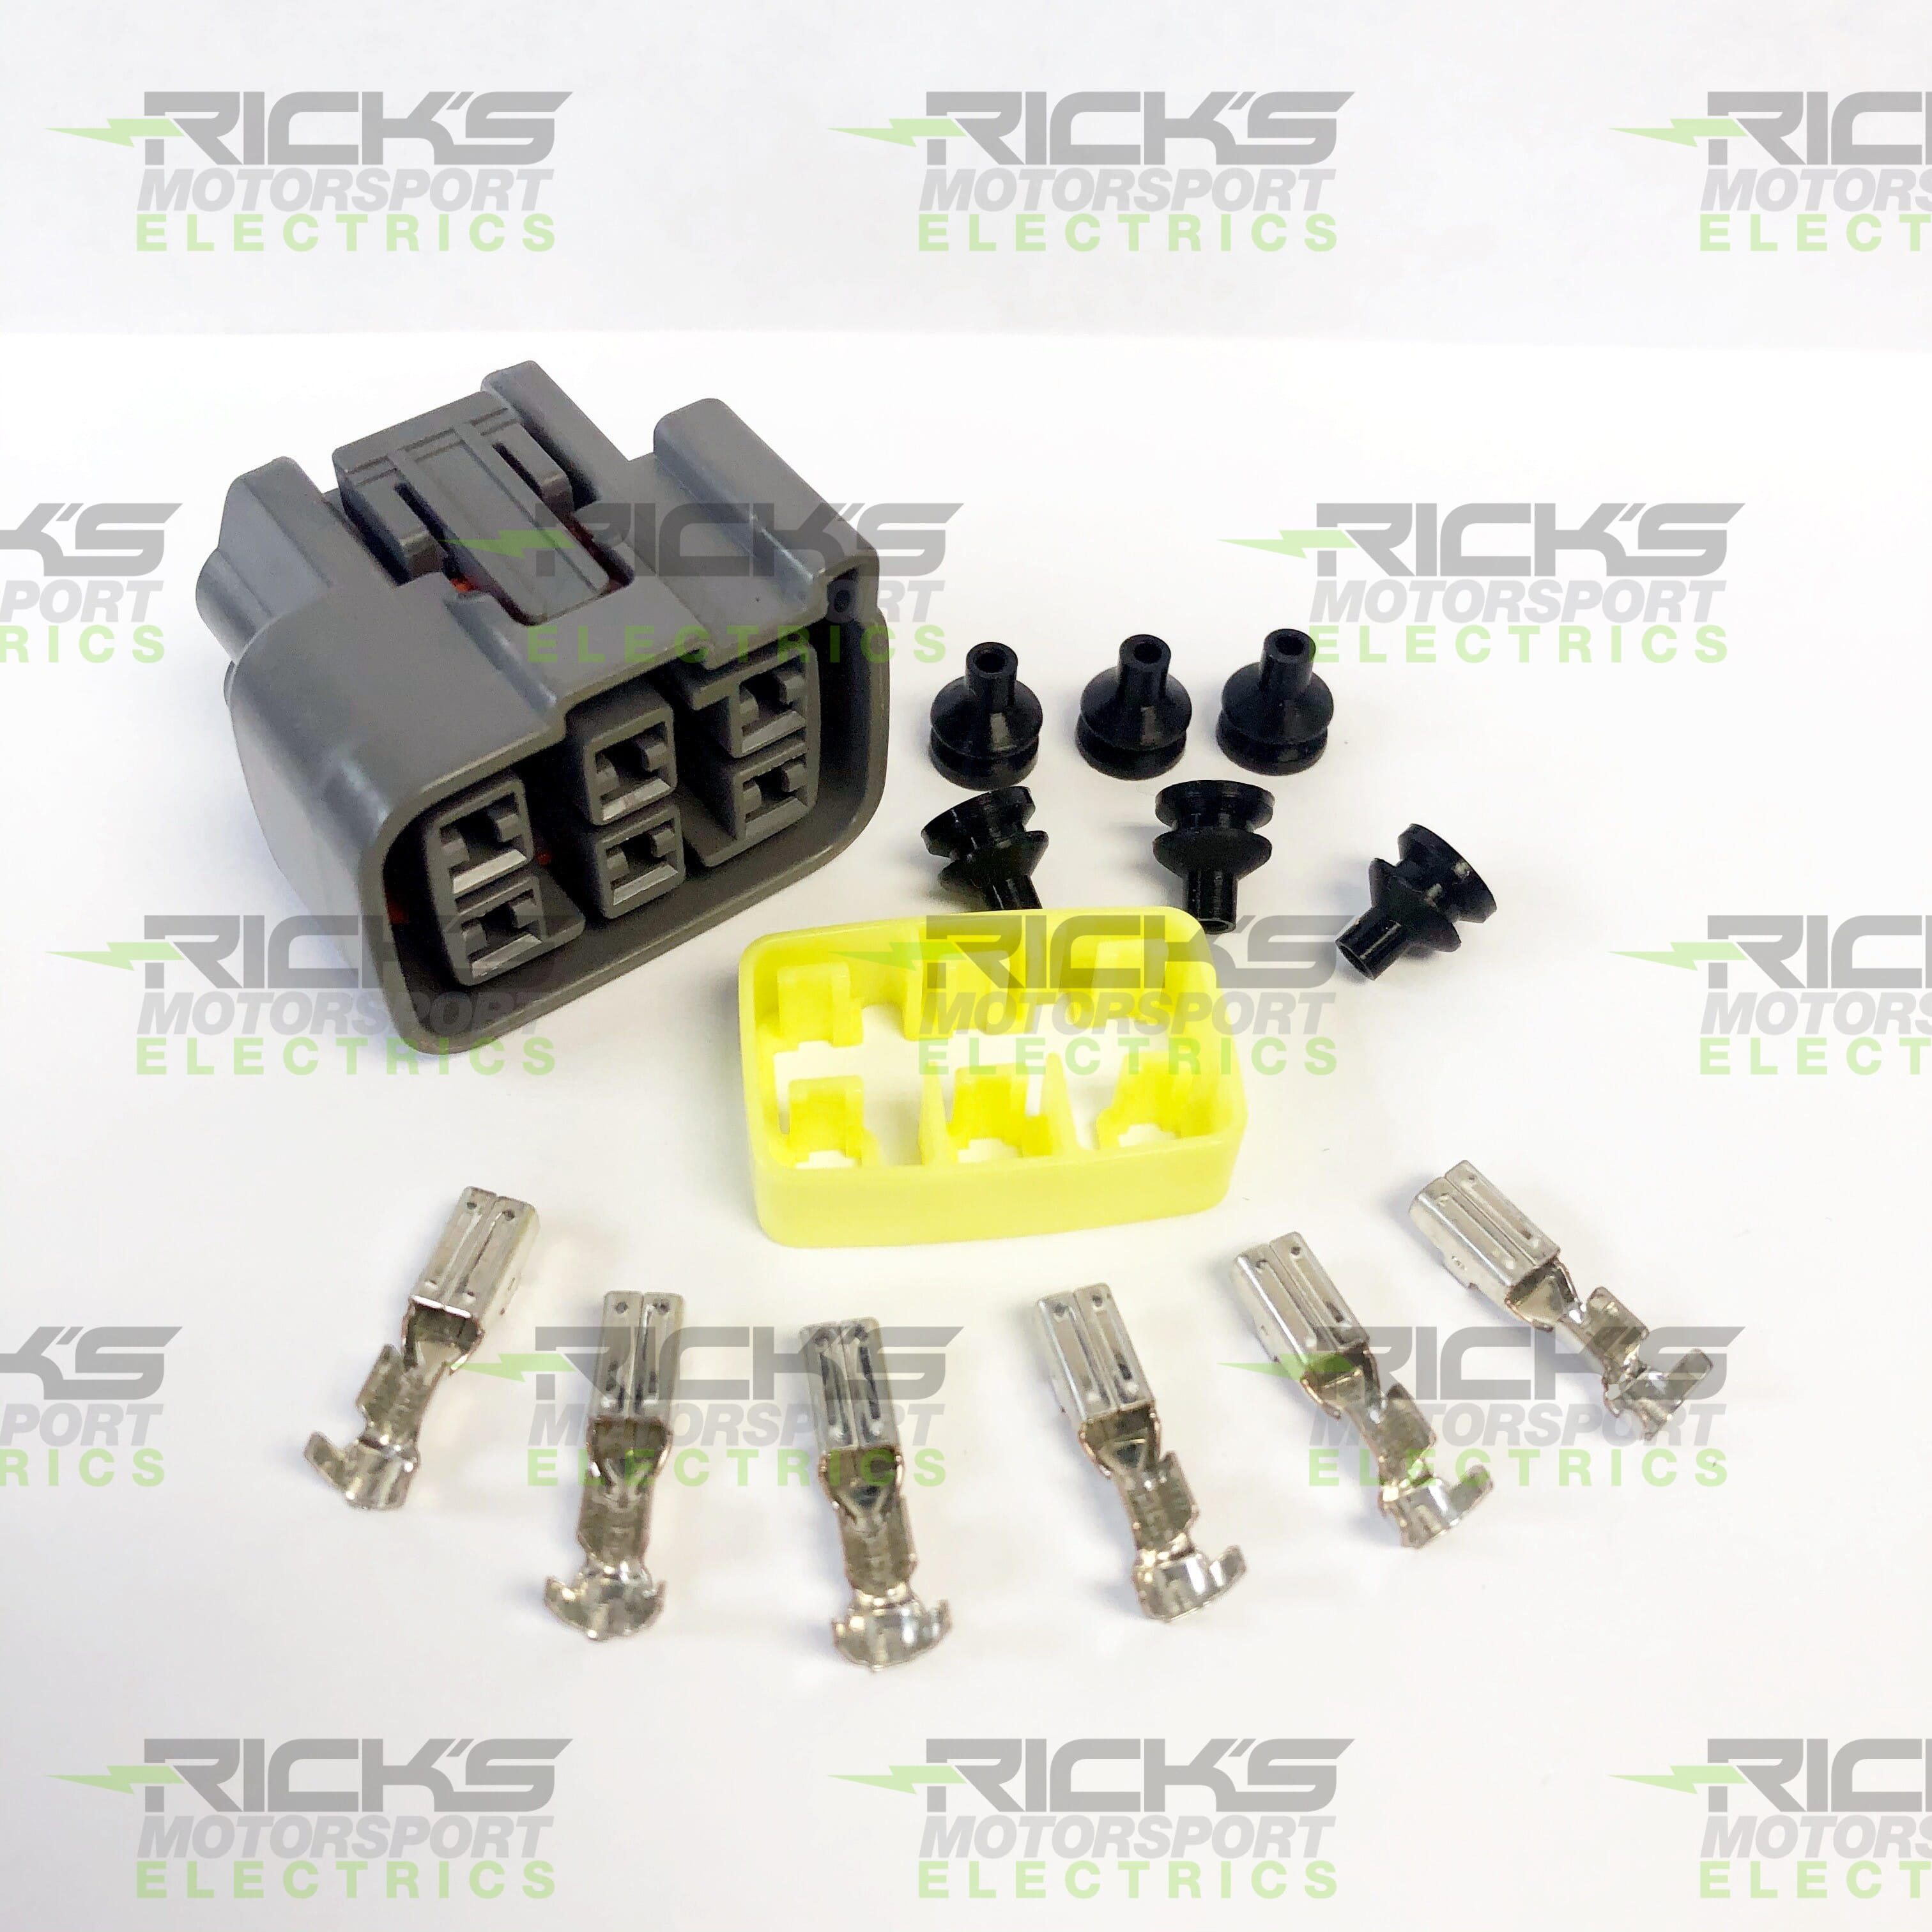 Wiring Harness Connector Kit 11_114